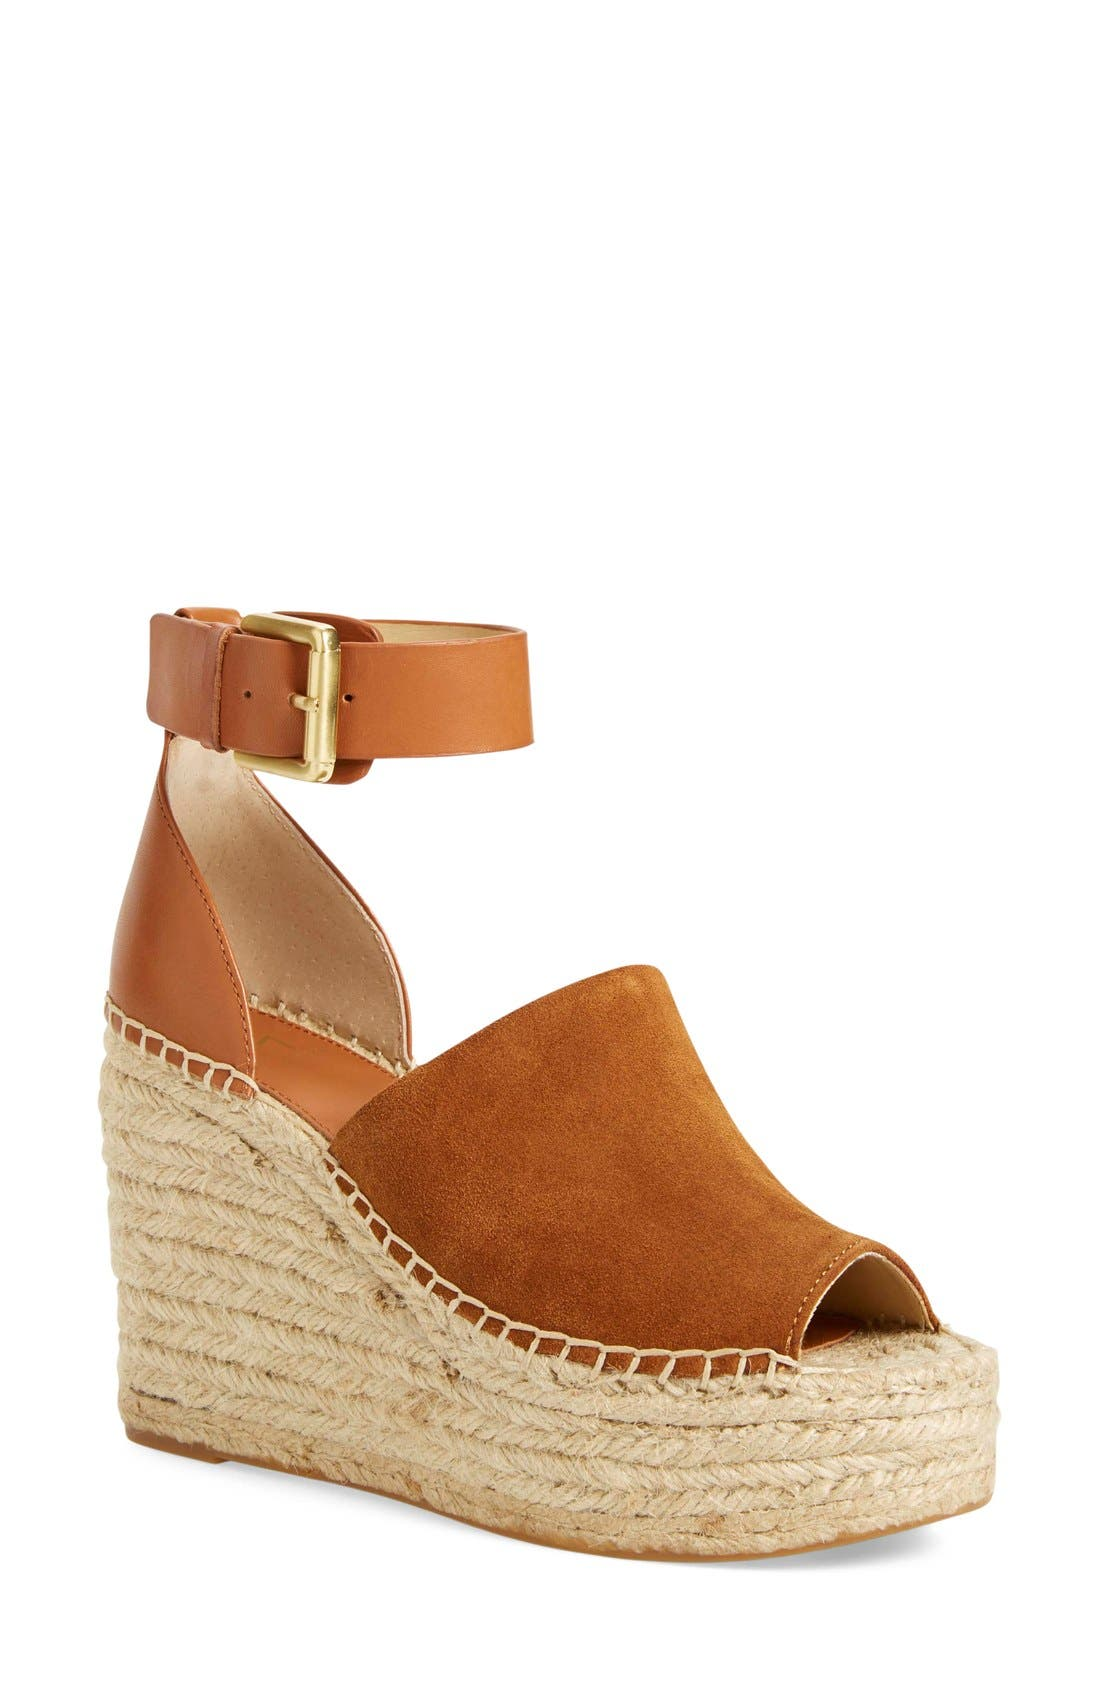 Wedge Heels & High-Heel Shoes for Women | Nordstrom